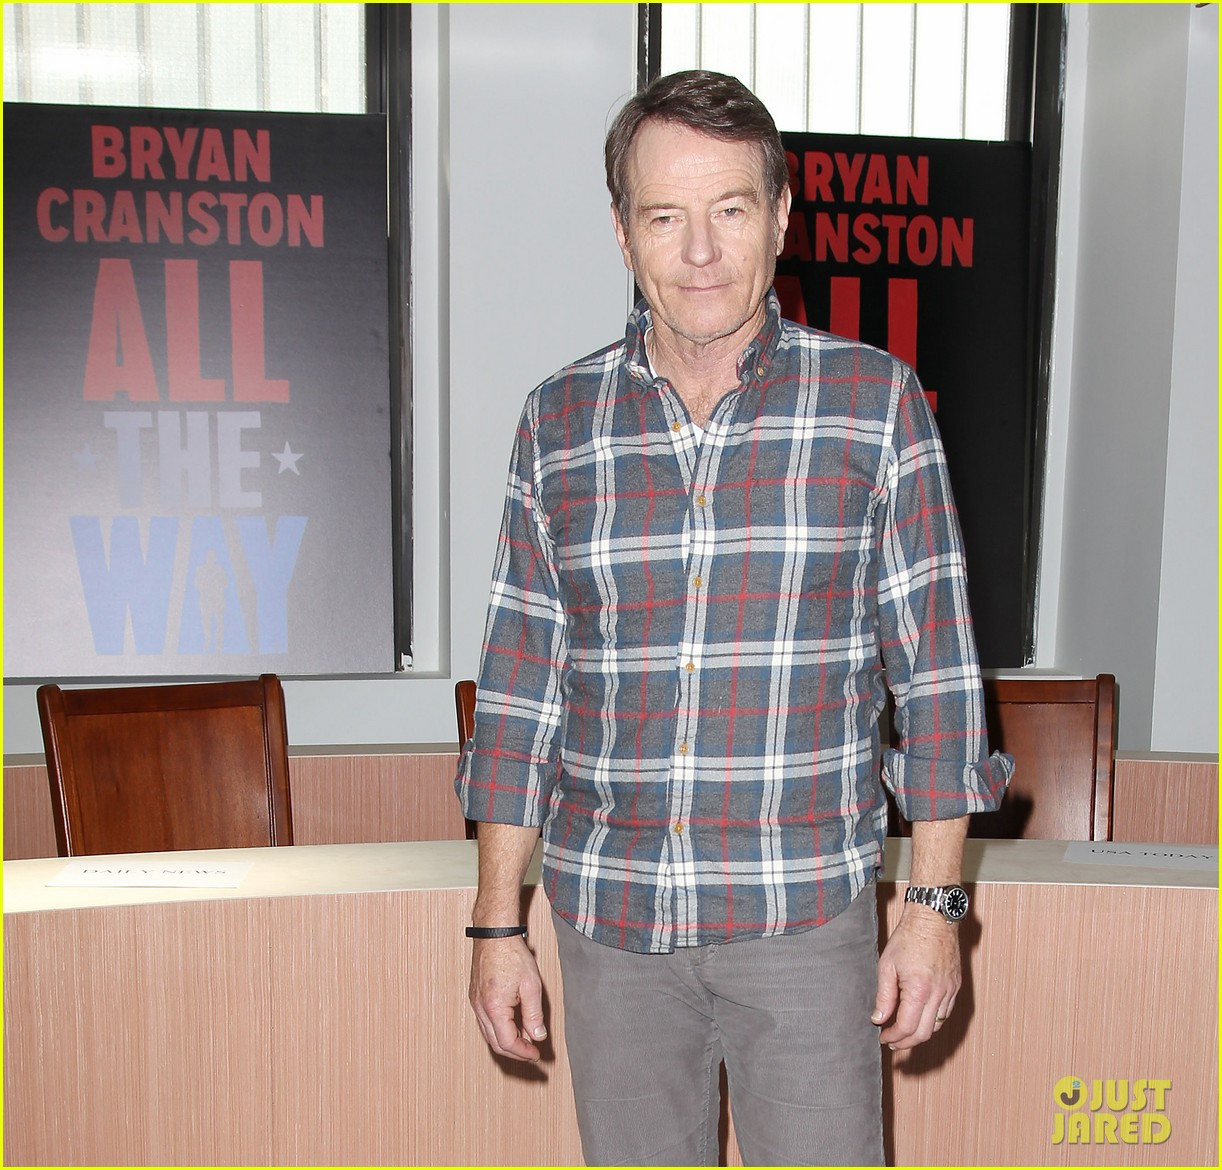 bryan cranston all the way cast preview 153037805